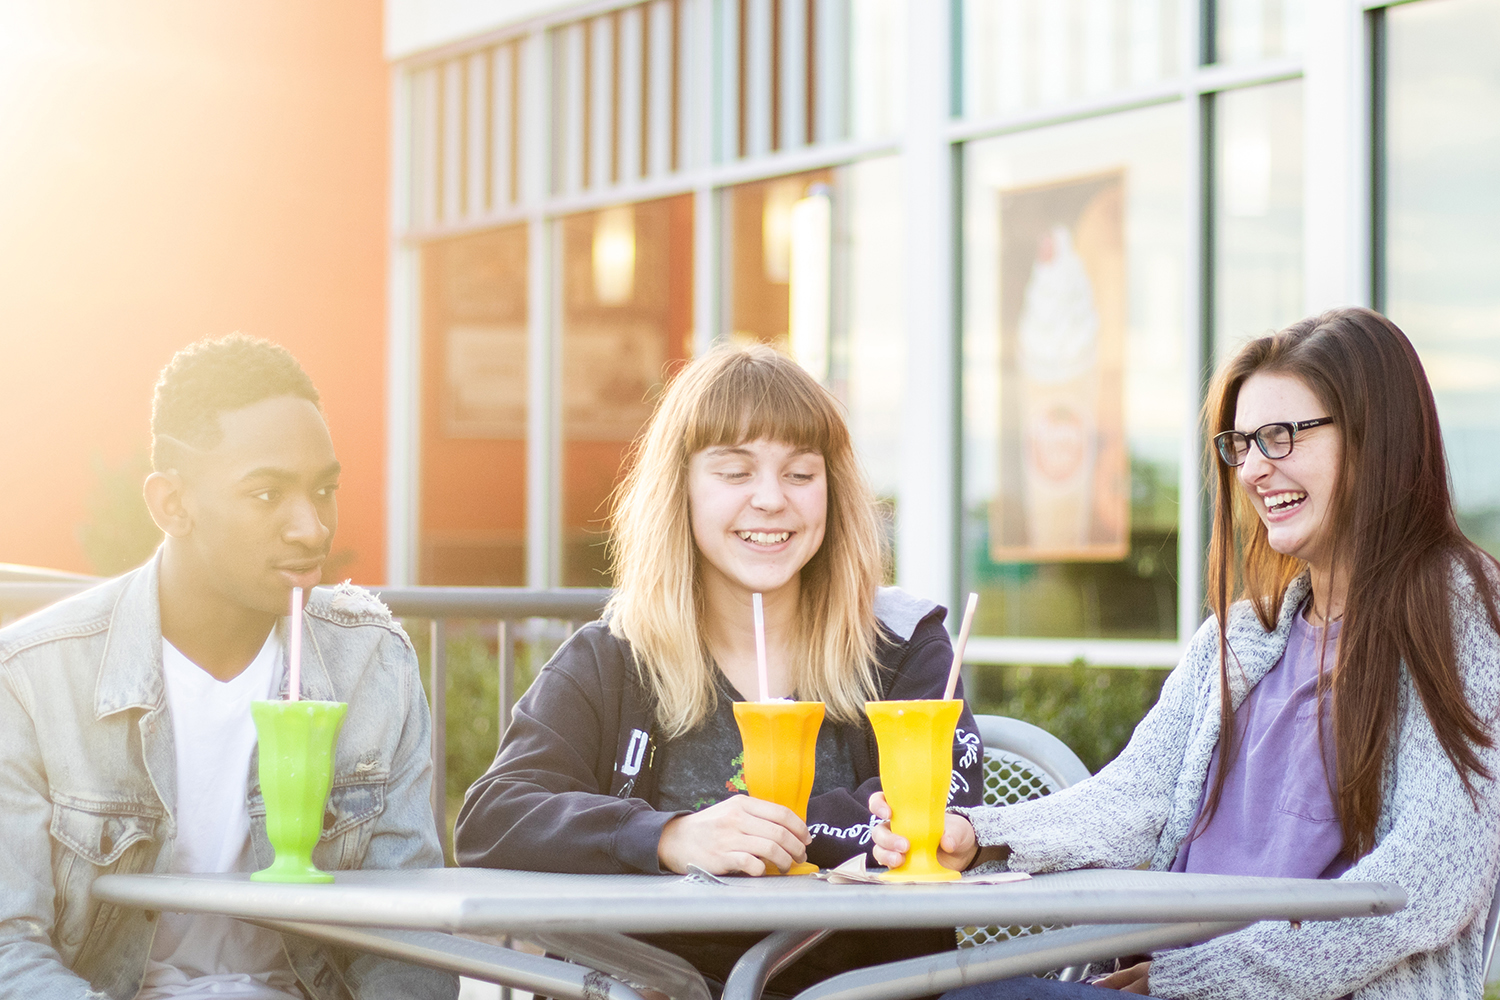 Students enjoy their down time at the local Steak 'N Shake. Throughout the years, hangouts have evolved from drive-ins to the multiple restaurants we see today.